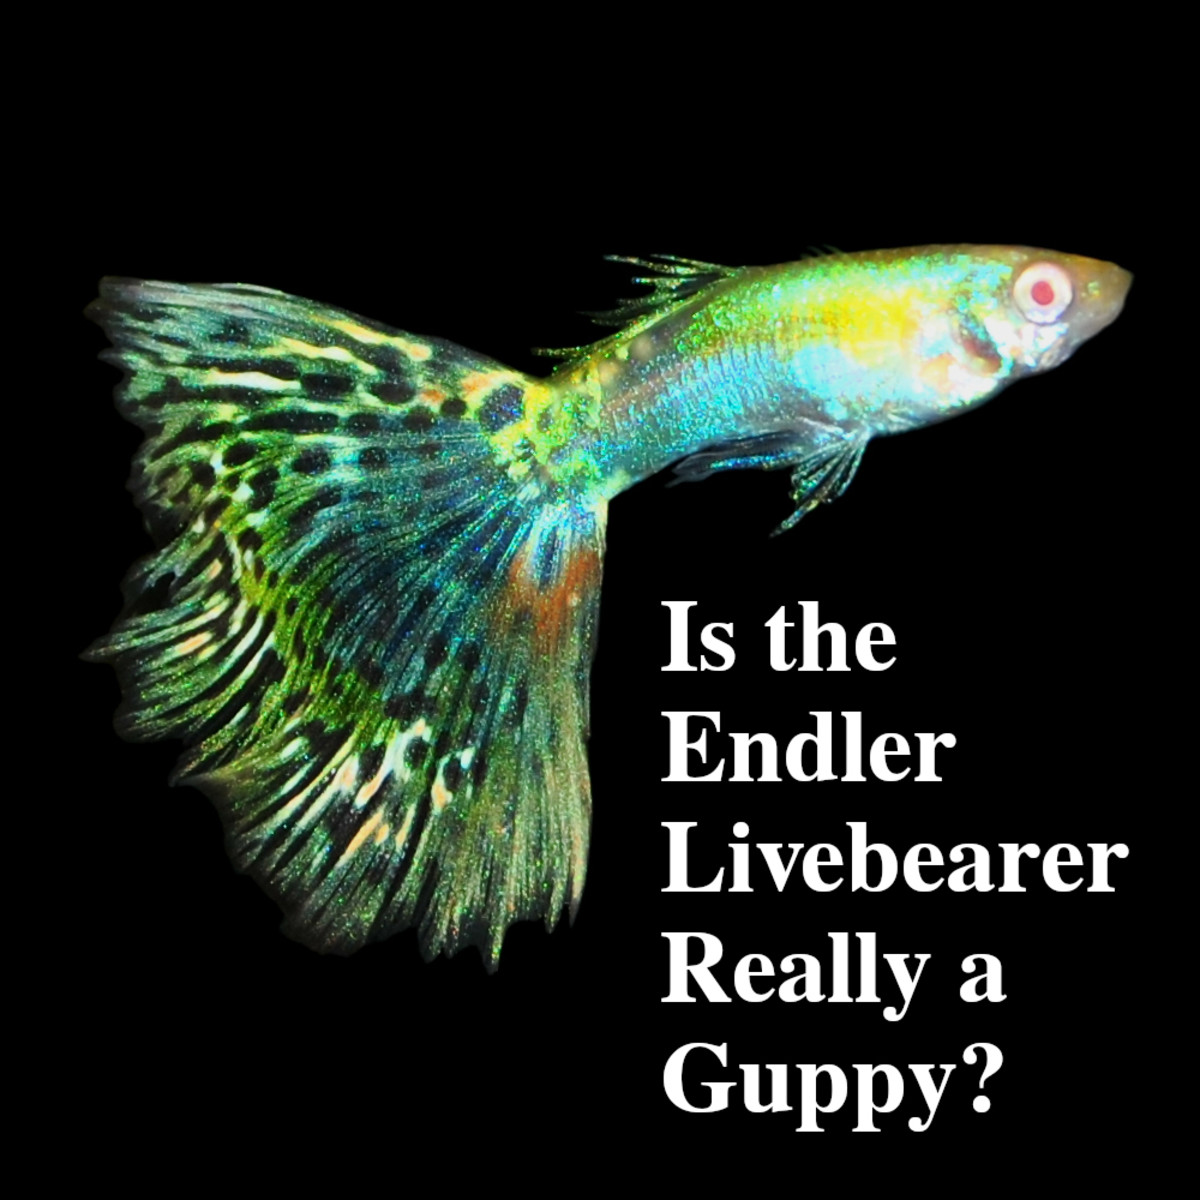 Is the Endlers Livebearer Really a Guppy?